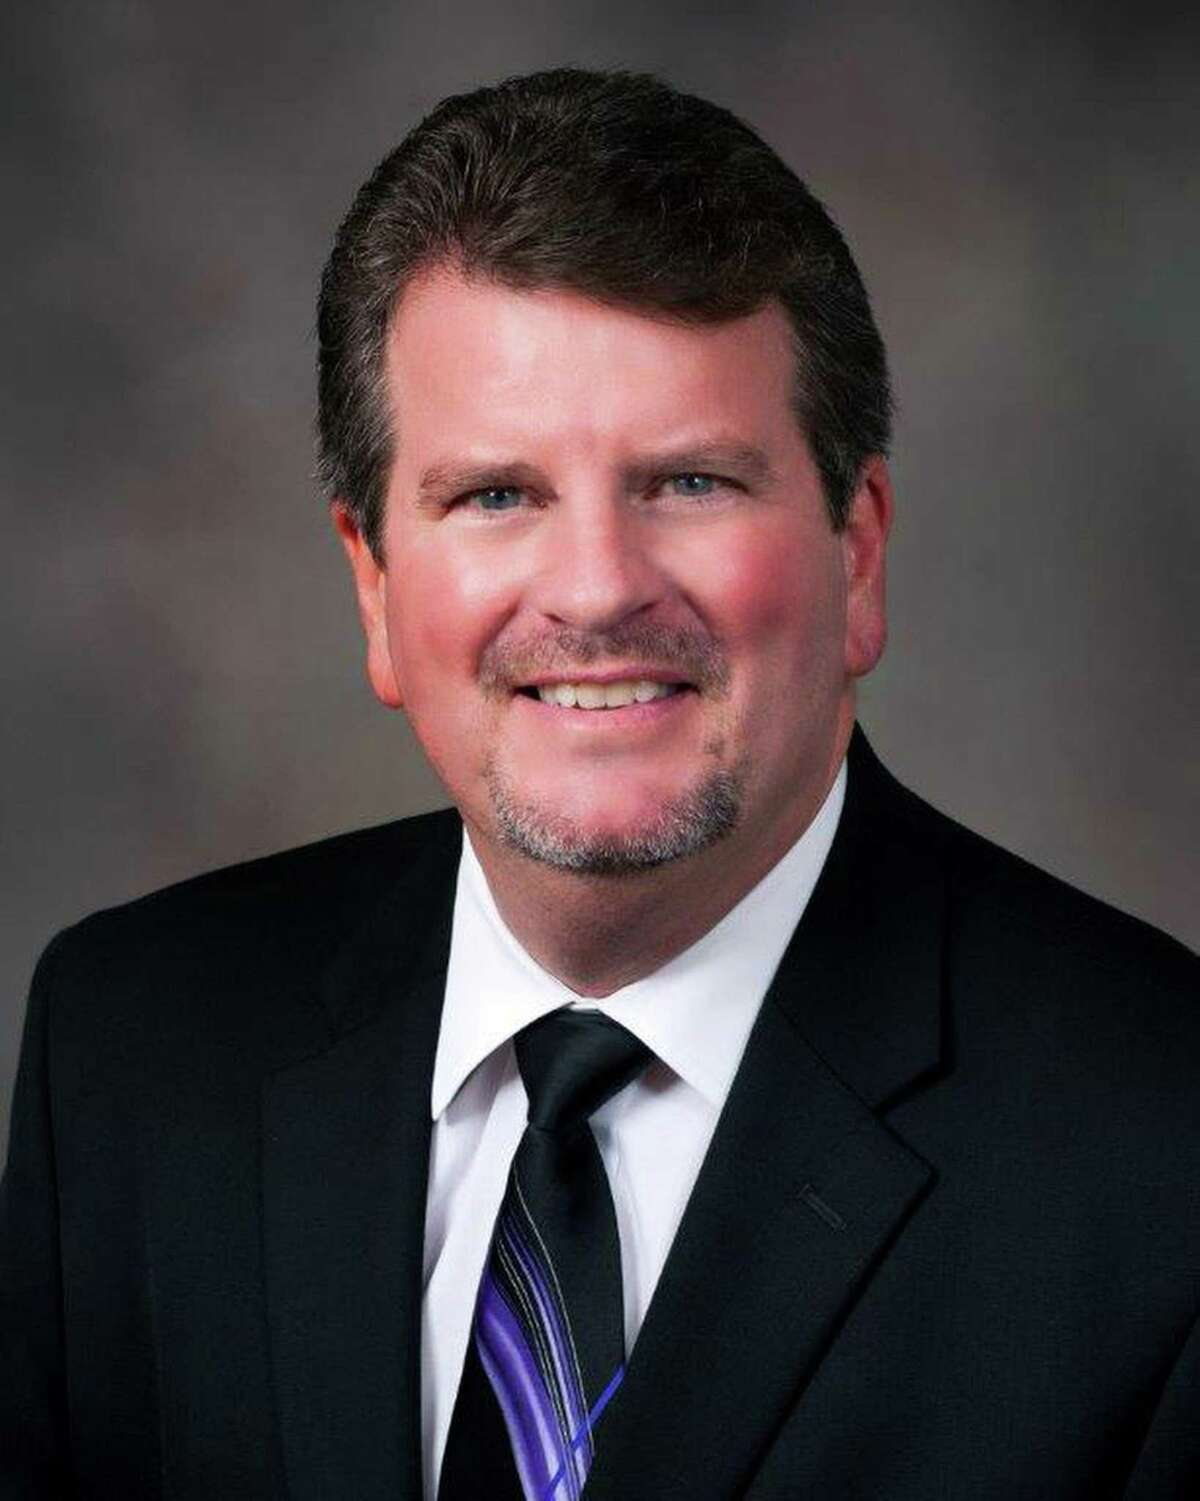 Mark E. Eads, the superintendent of Southside ISD, will continue in that role under a new board of managers appointed by the state Friday.